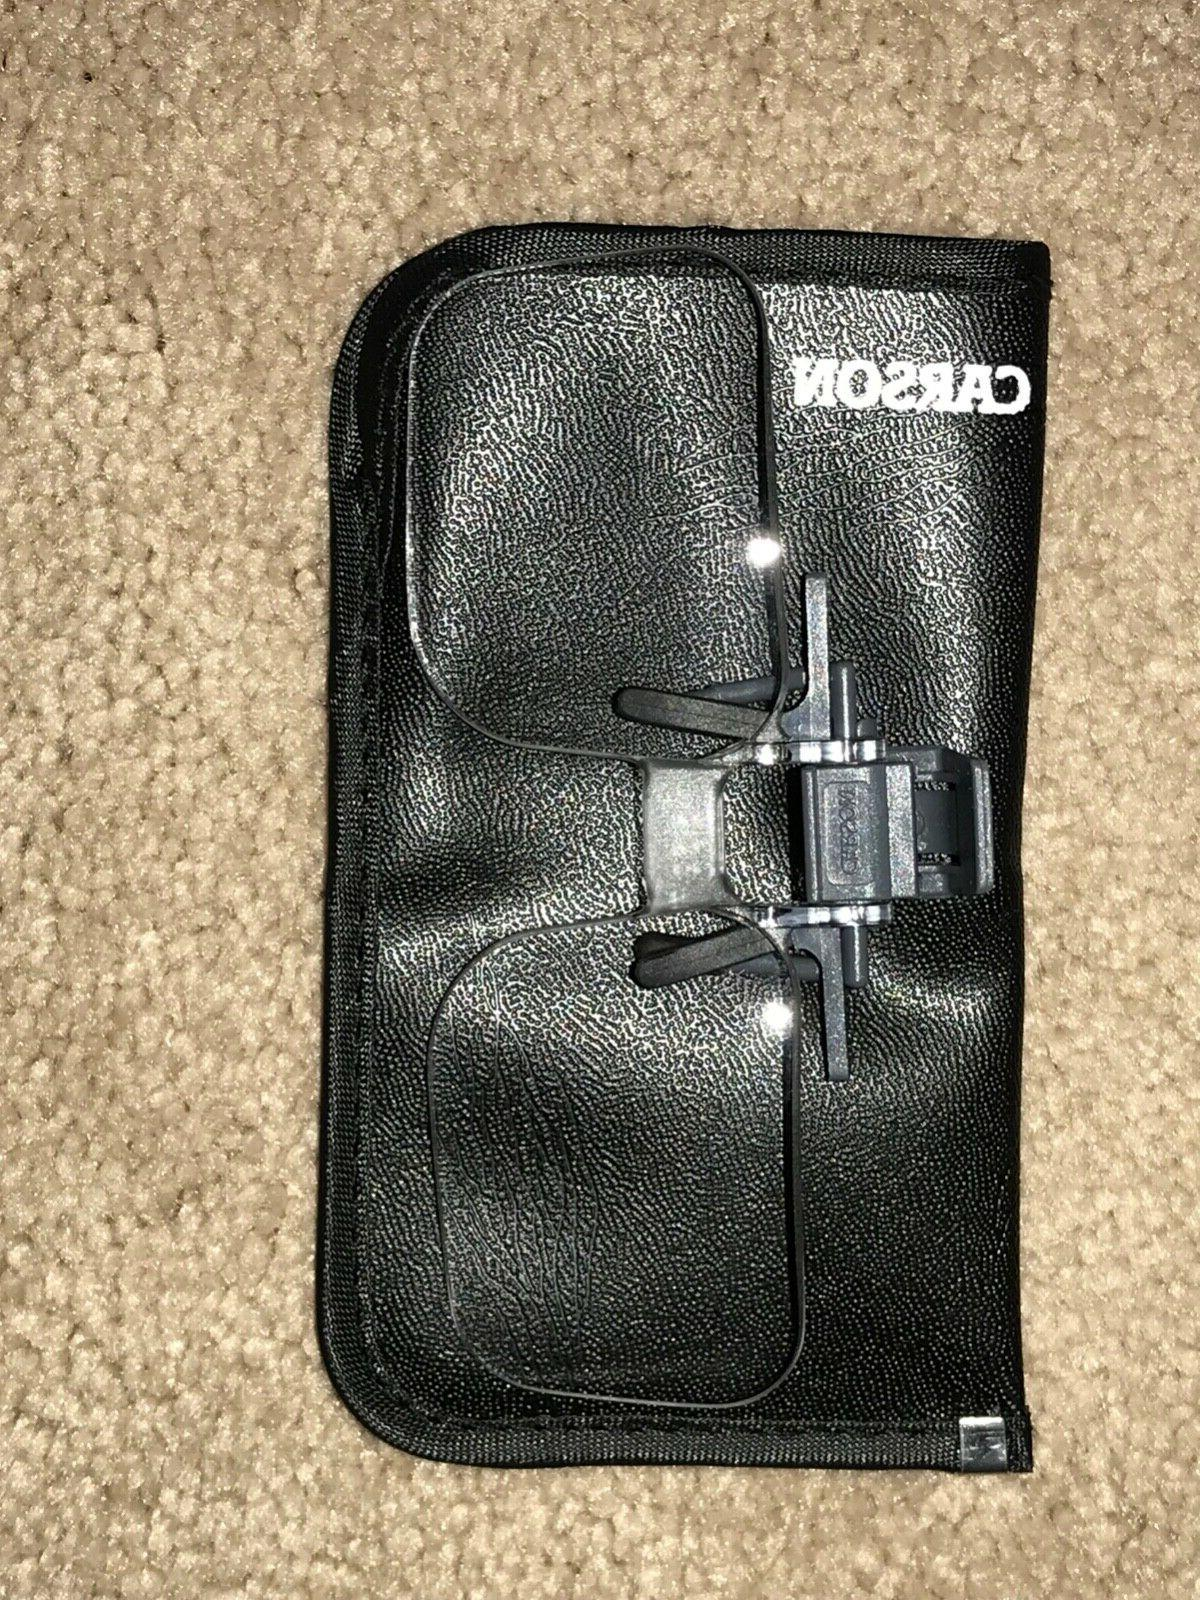 optical clip and flip up magnifiers reading